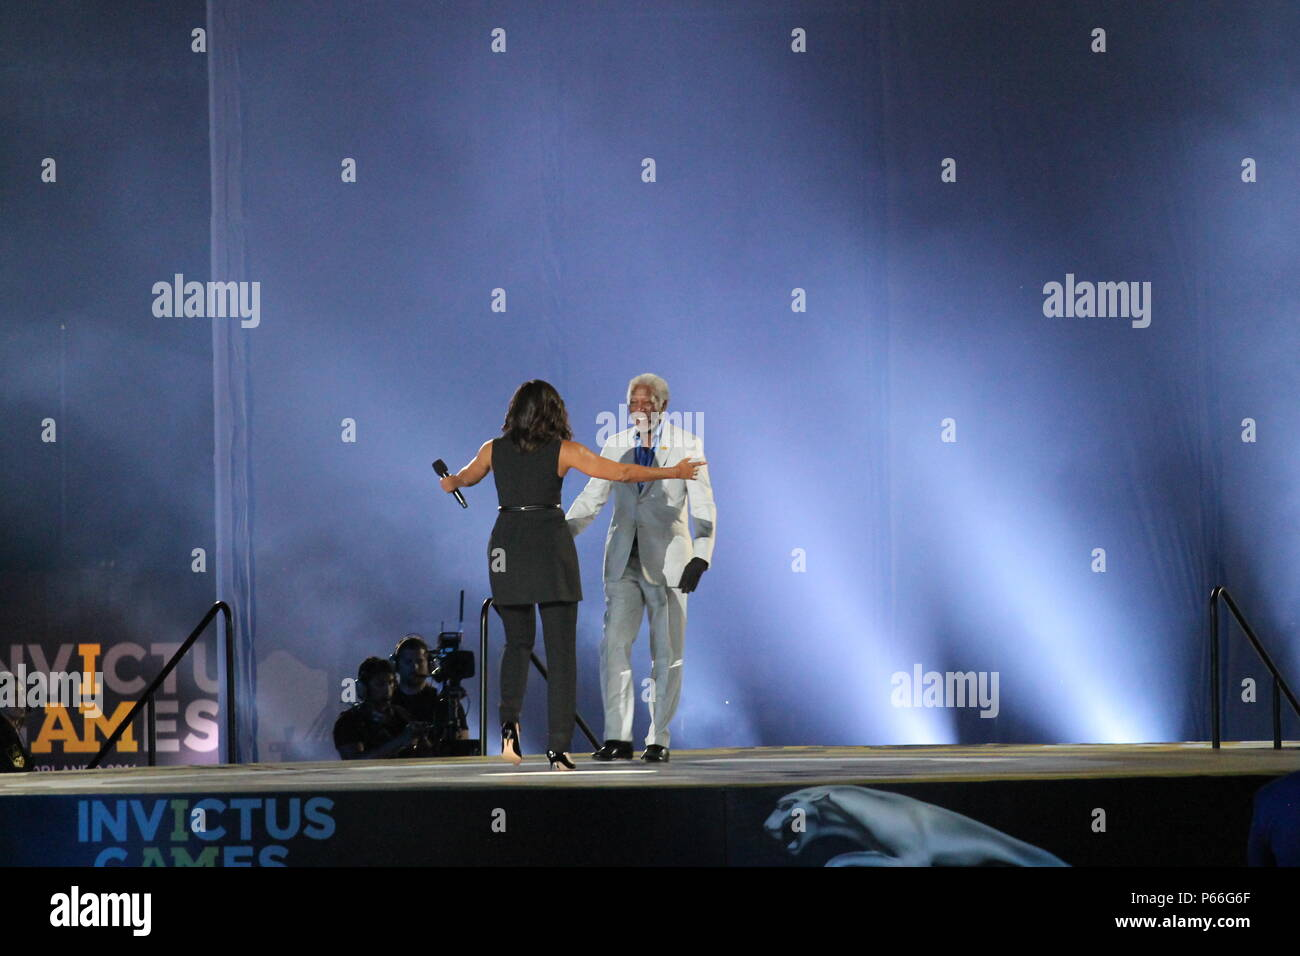 First lady michelle obama and actor morgan freeman exchange first lady michelle obama and actor morgan freeman exchange greetings during the opening ceremony of the 2016 invictus games held at walt disney world m4hsunfo